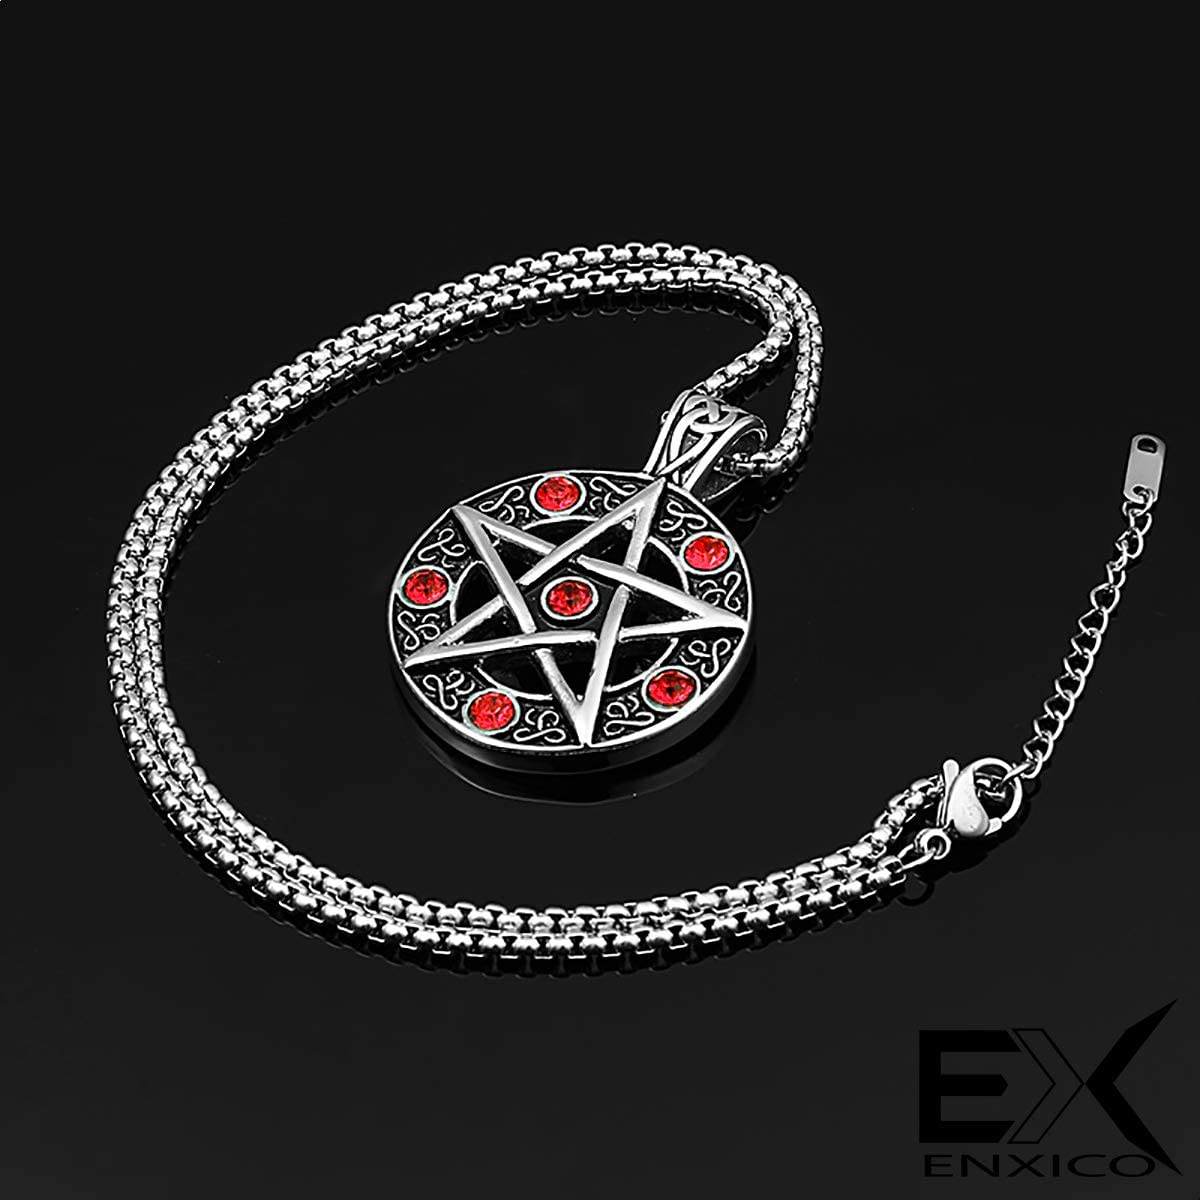 ENXICO Pentacle Amulet Pendant Necklace with Blue Stone 316L Stainless Steel Wicca Pagan Witchcraft Jewelry